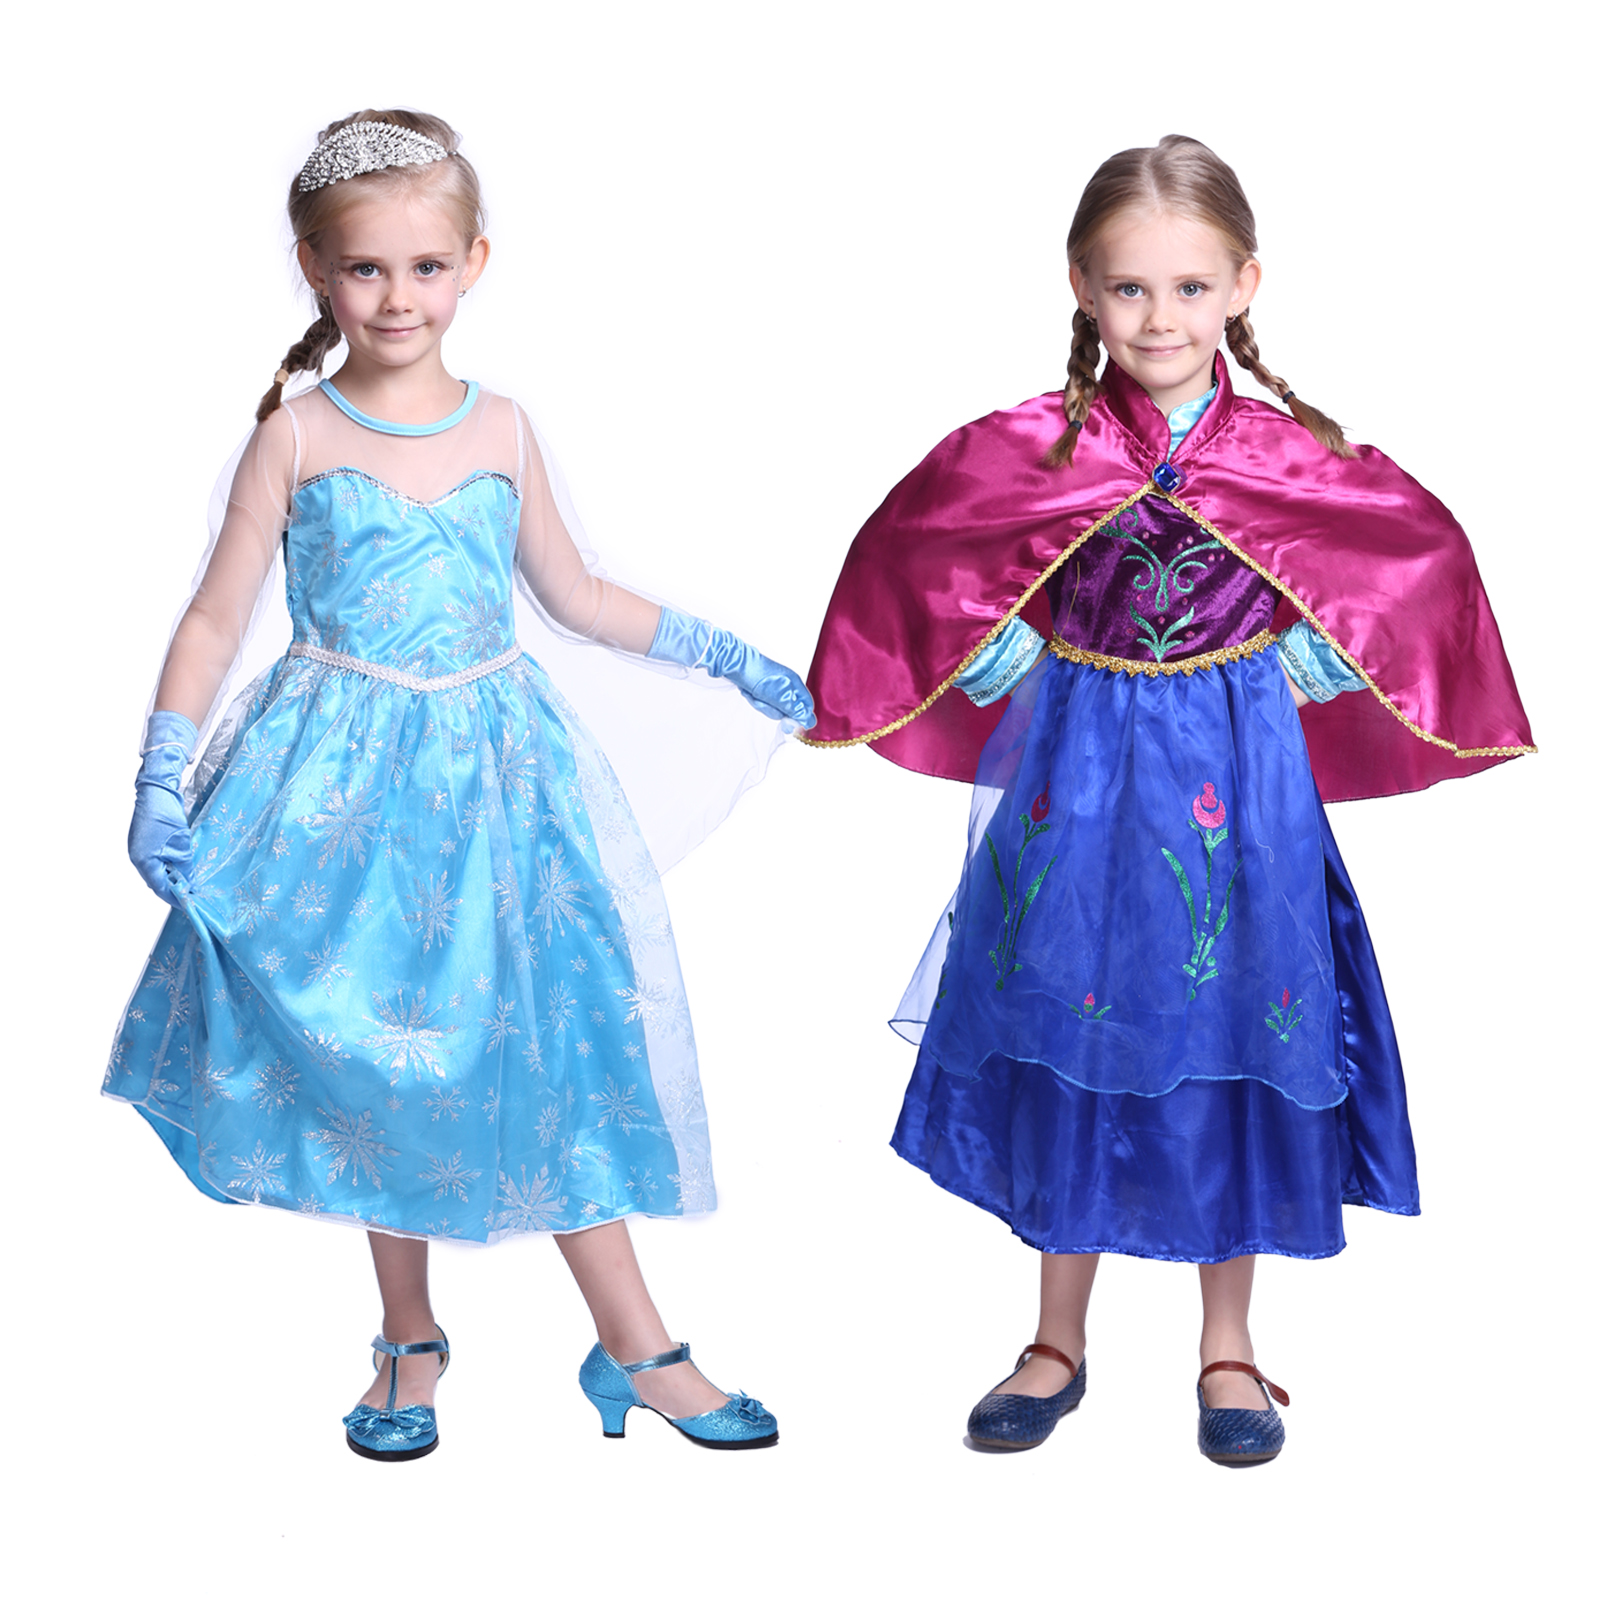 120 140cm frozen eisk nigin prinzessin anna kleid elsa fancy kost m halloween ebay. Black Bedroom Furniture Sets. Home Design Ideas